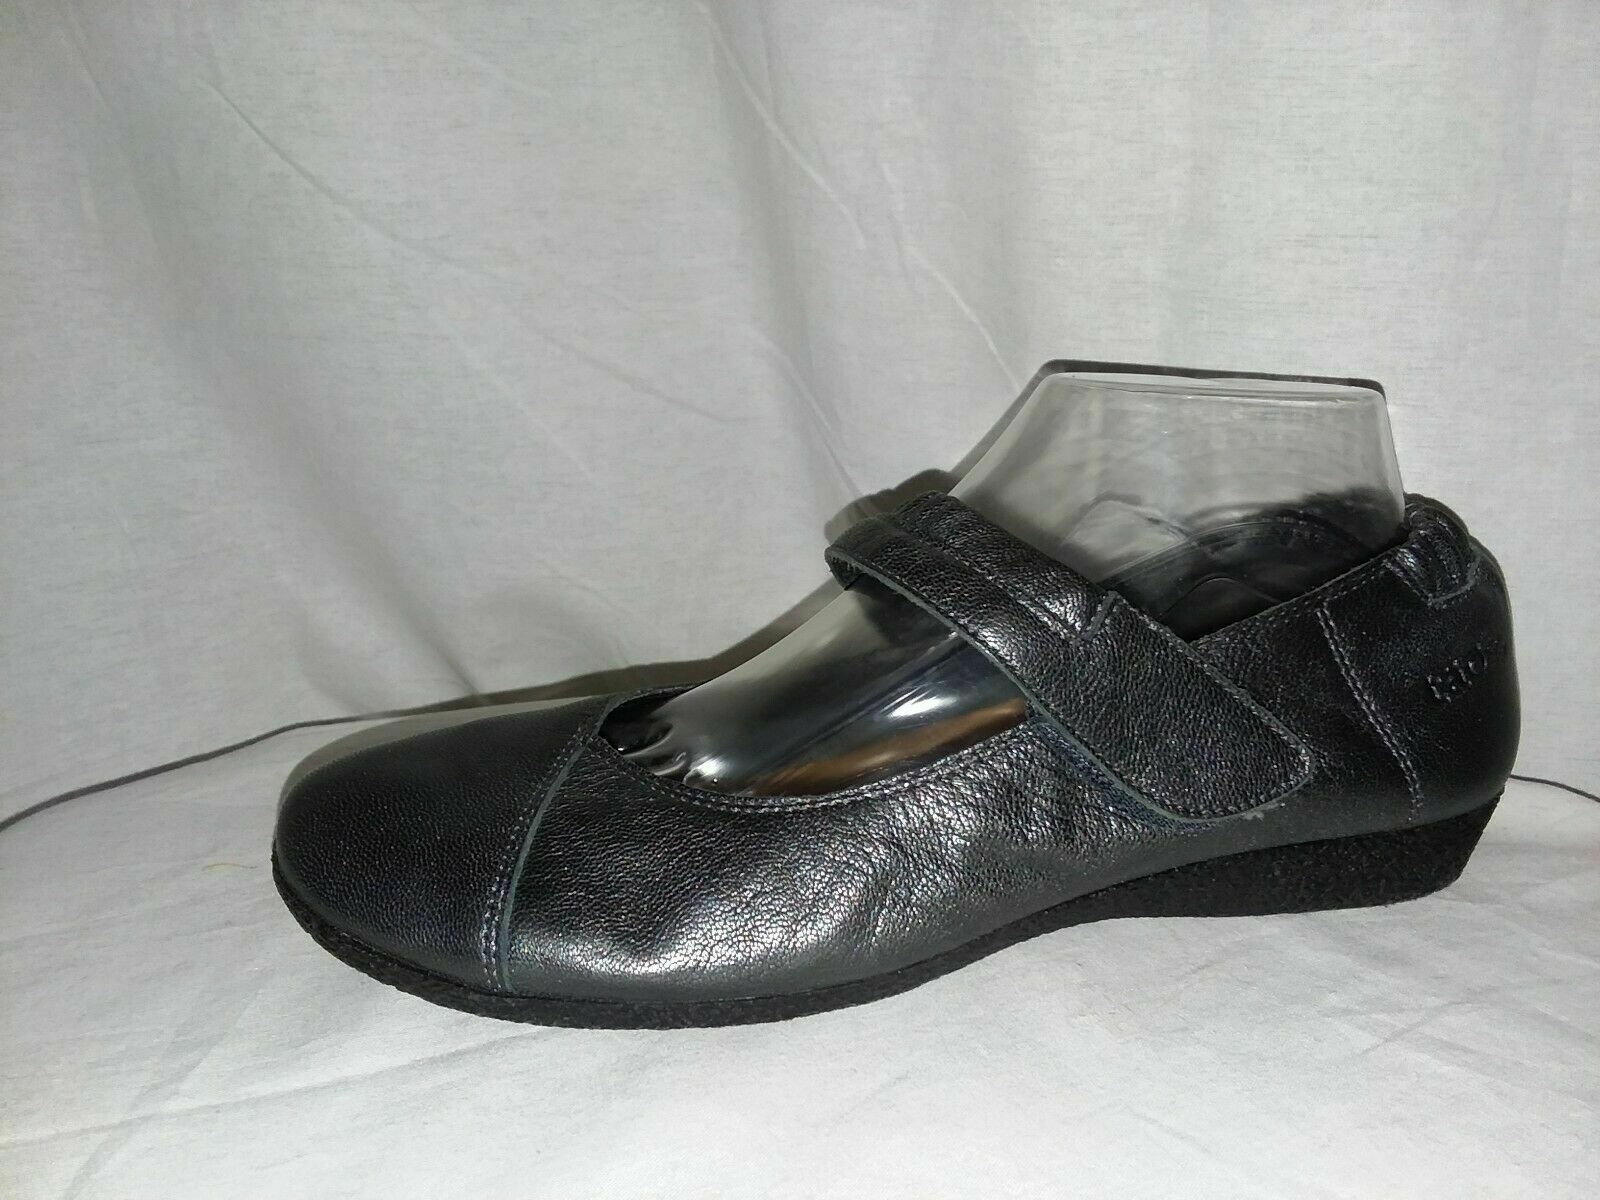 TAOS Shoes Women's Size 8.5-9/40 Gray Soft Leather Hook & Loop Mary Jane Wedges